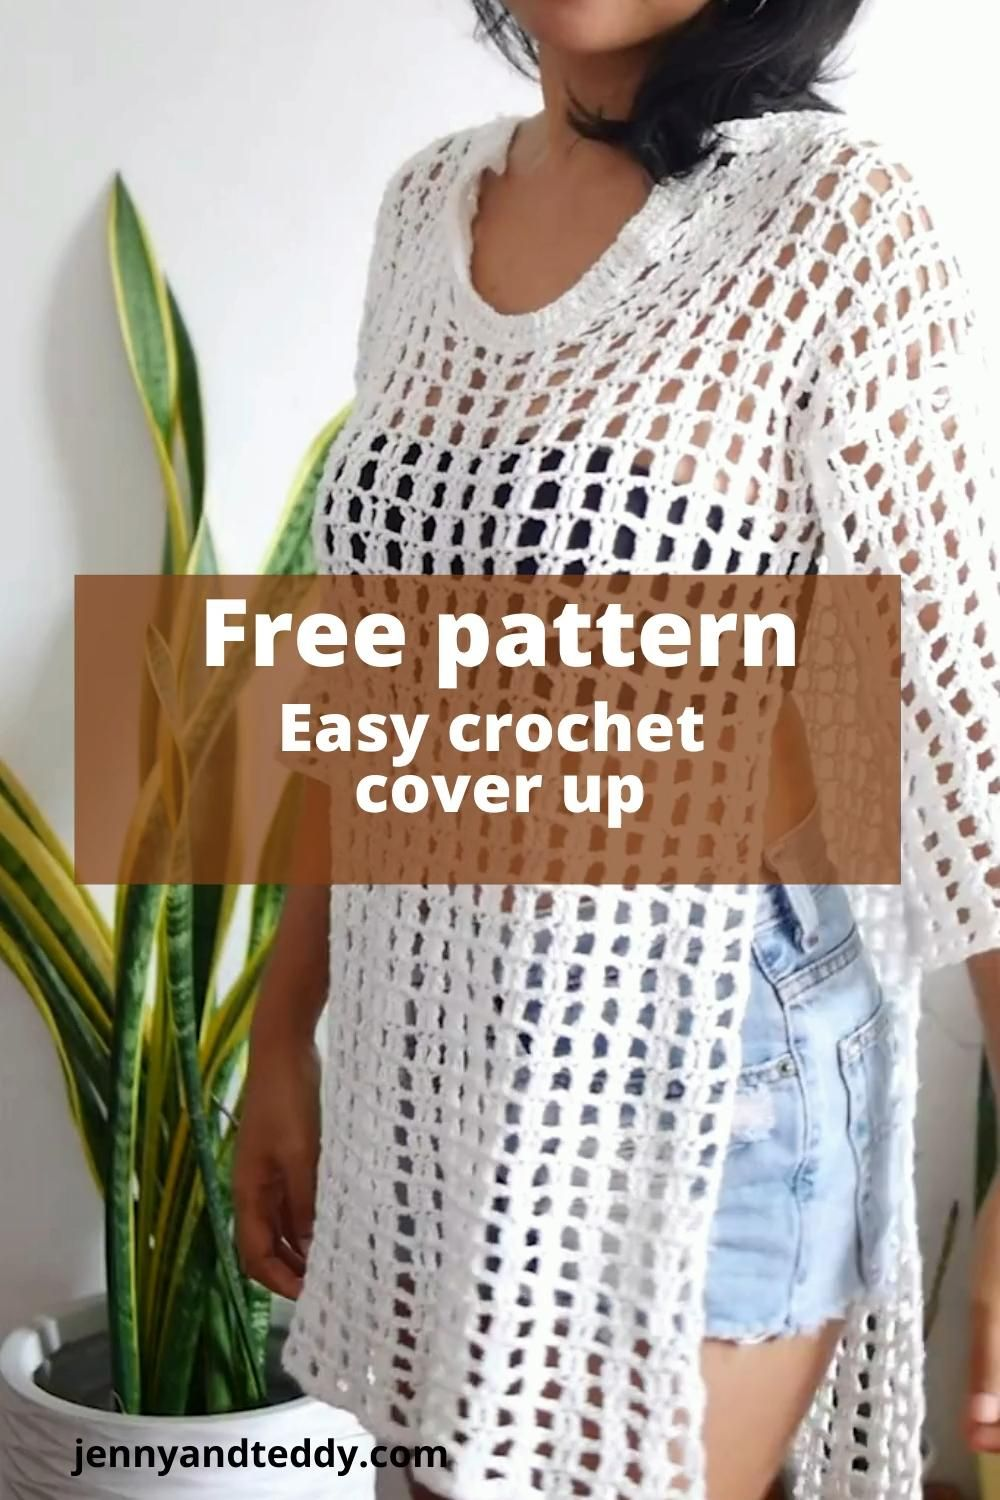 Easy crochet cover up free pattern and video tutorial